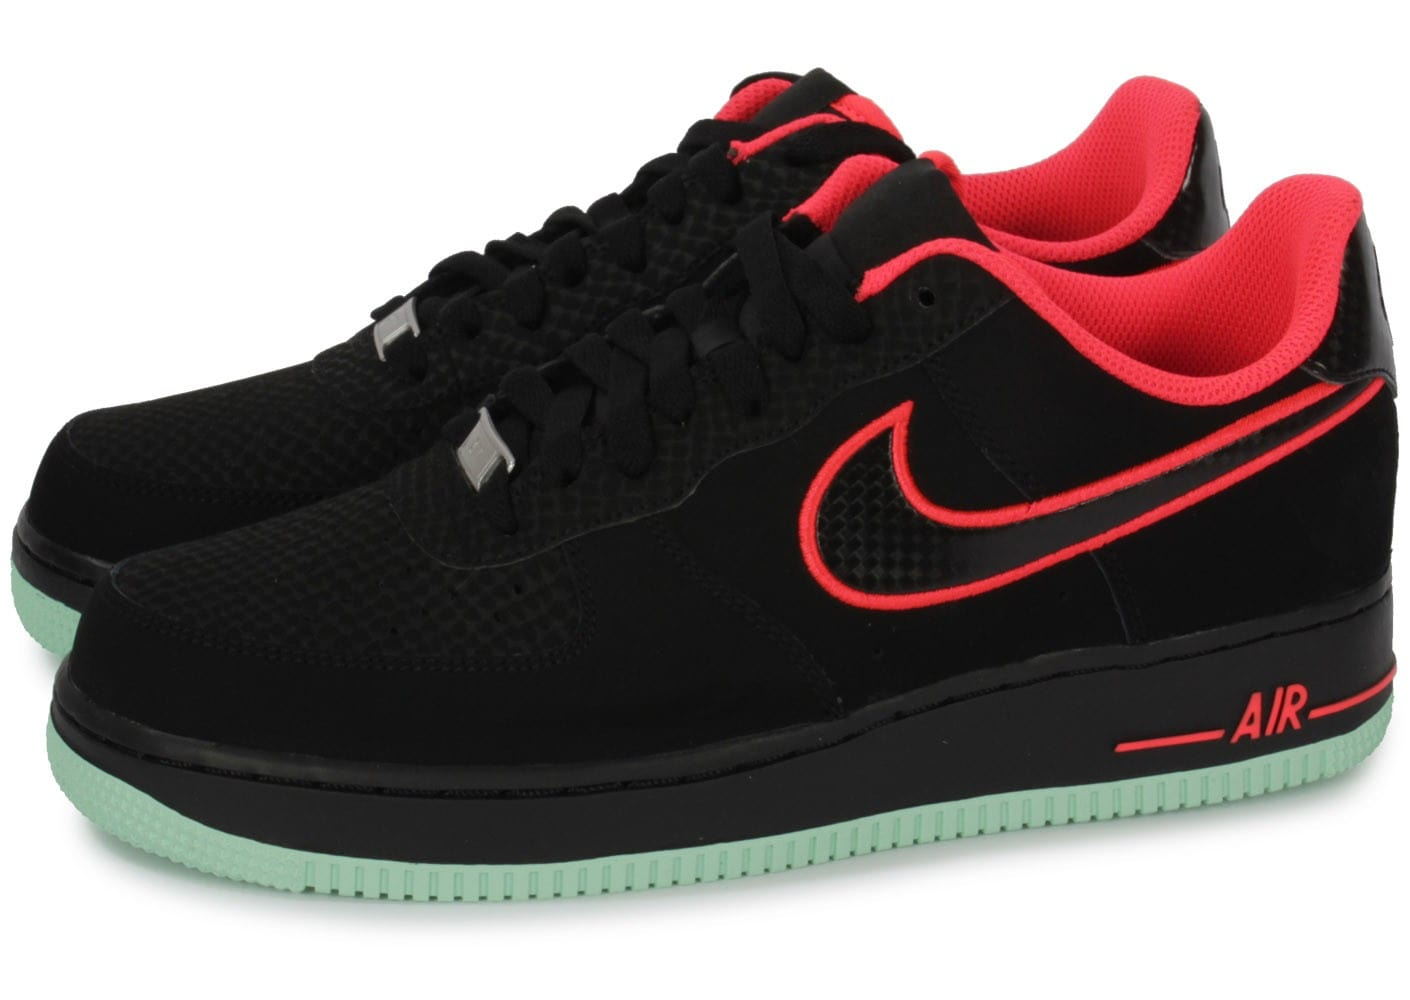 nike air force one yeezy embed. Black Bedroom Furniture Sets. Home Design Ideas